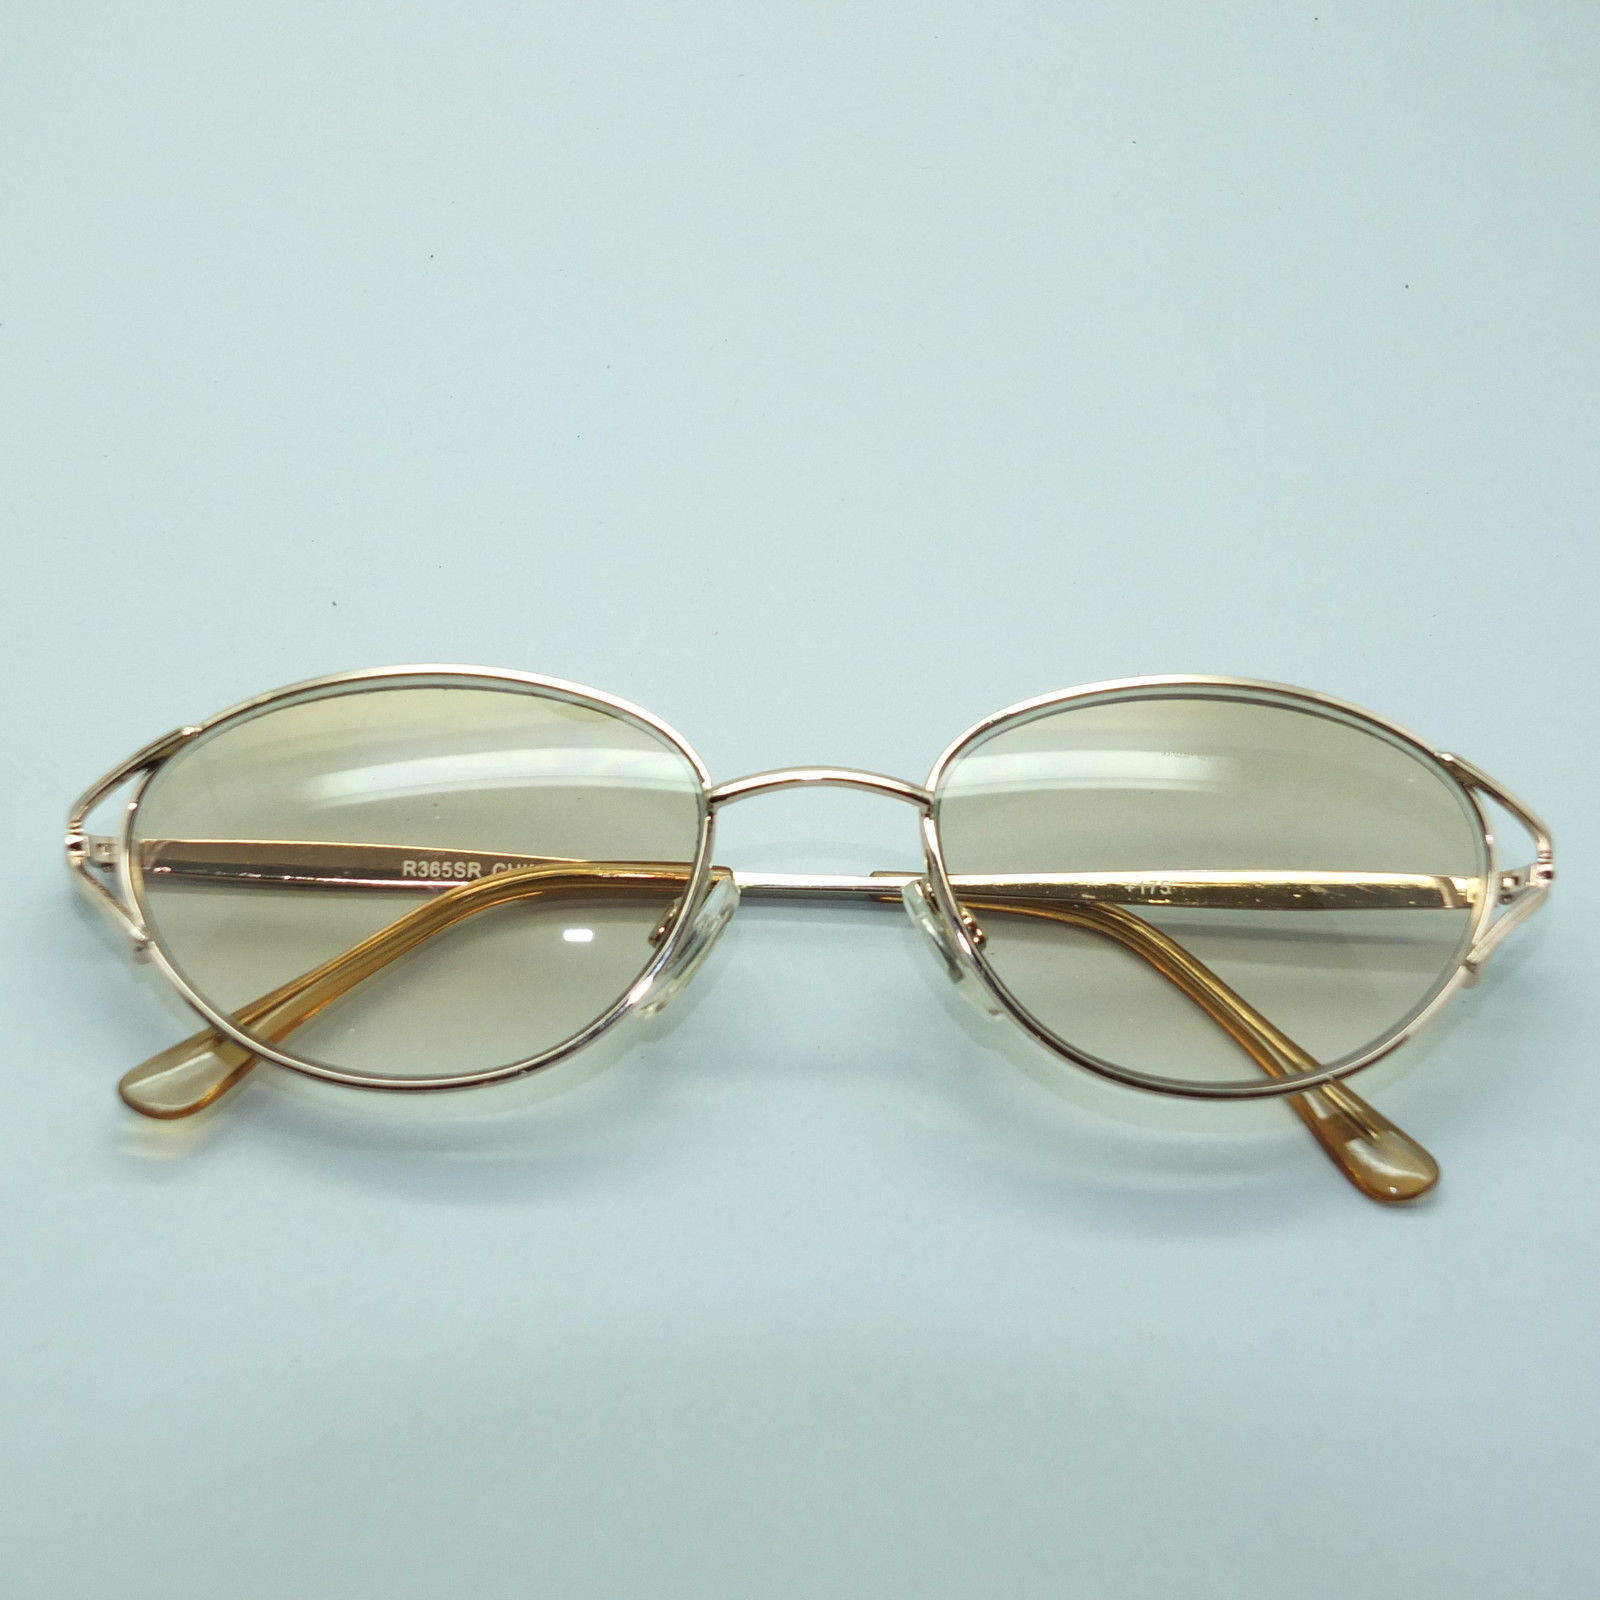 Gold Frame Oval Sunglasses : Classic Ladies Oval Pretty Gold Frame Tinted Sunglasses ...